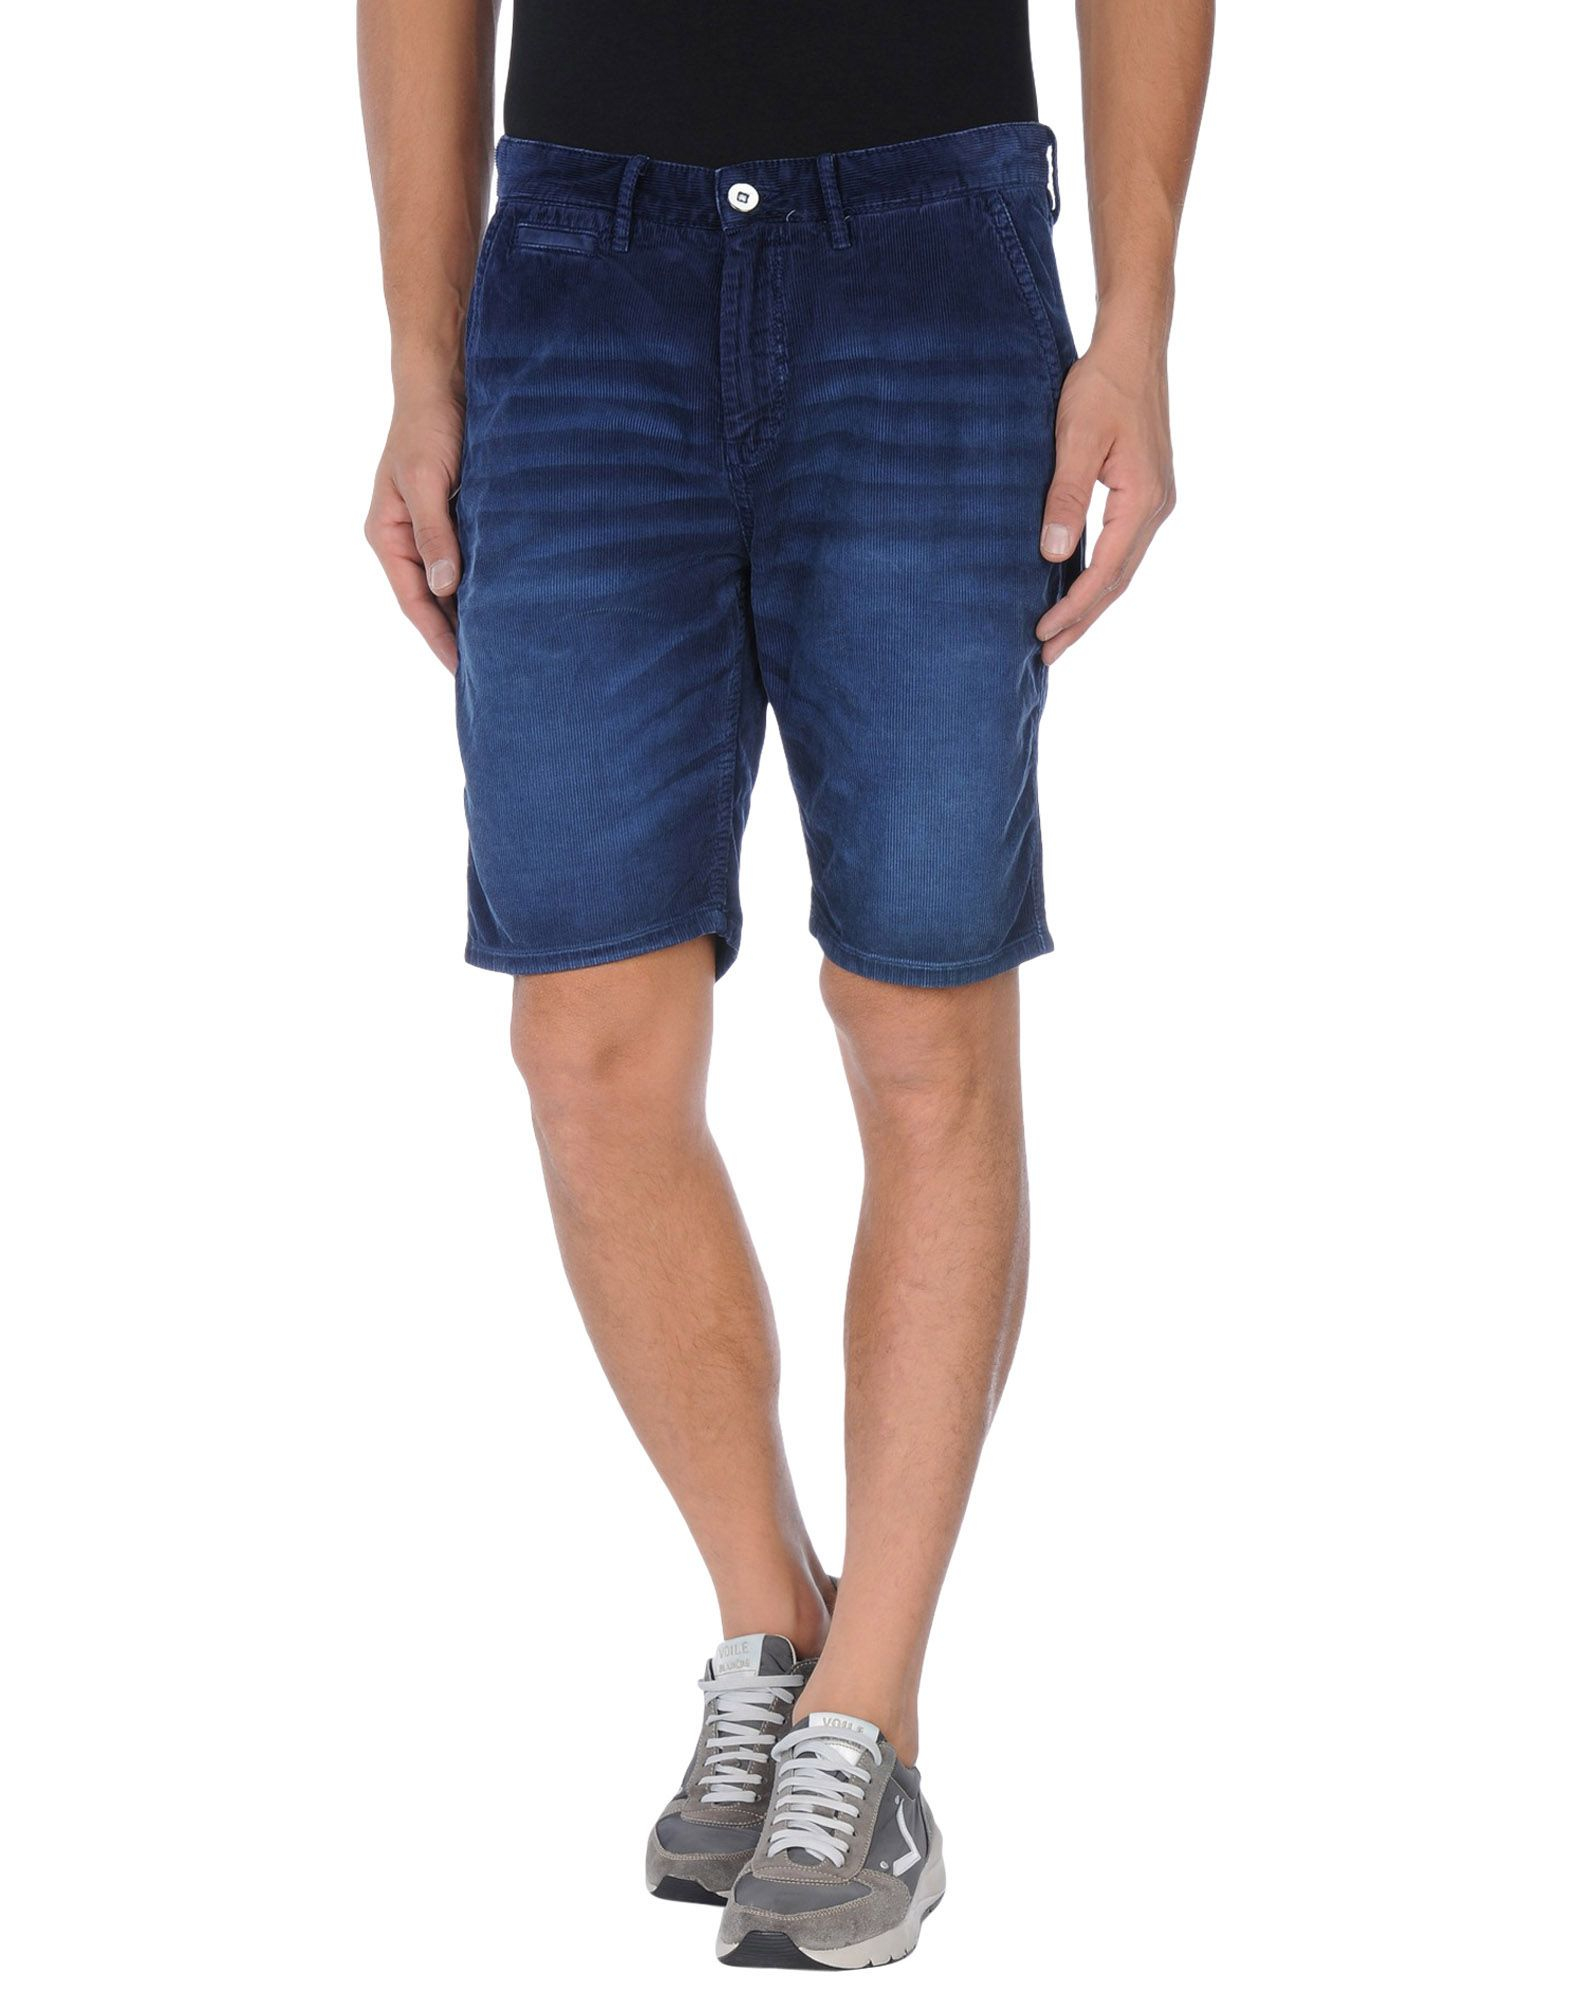 These shorts fit true to size but are slightly more fitted than TABS Bermuda Shorts. If in doubt go bigger, there is a hidden draw string to adjust the waist.